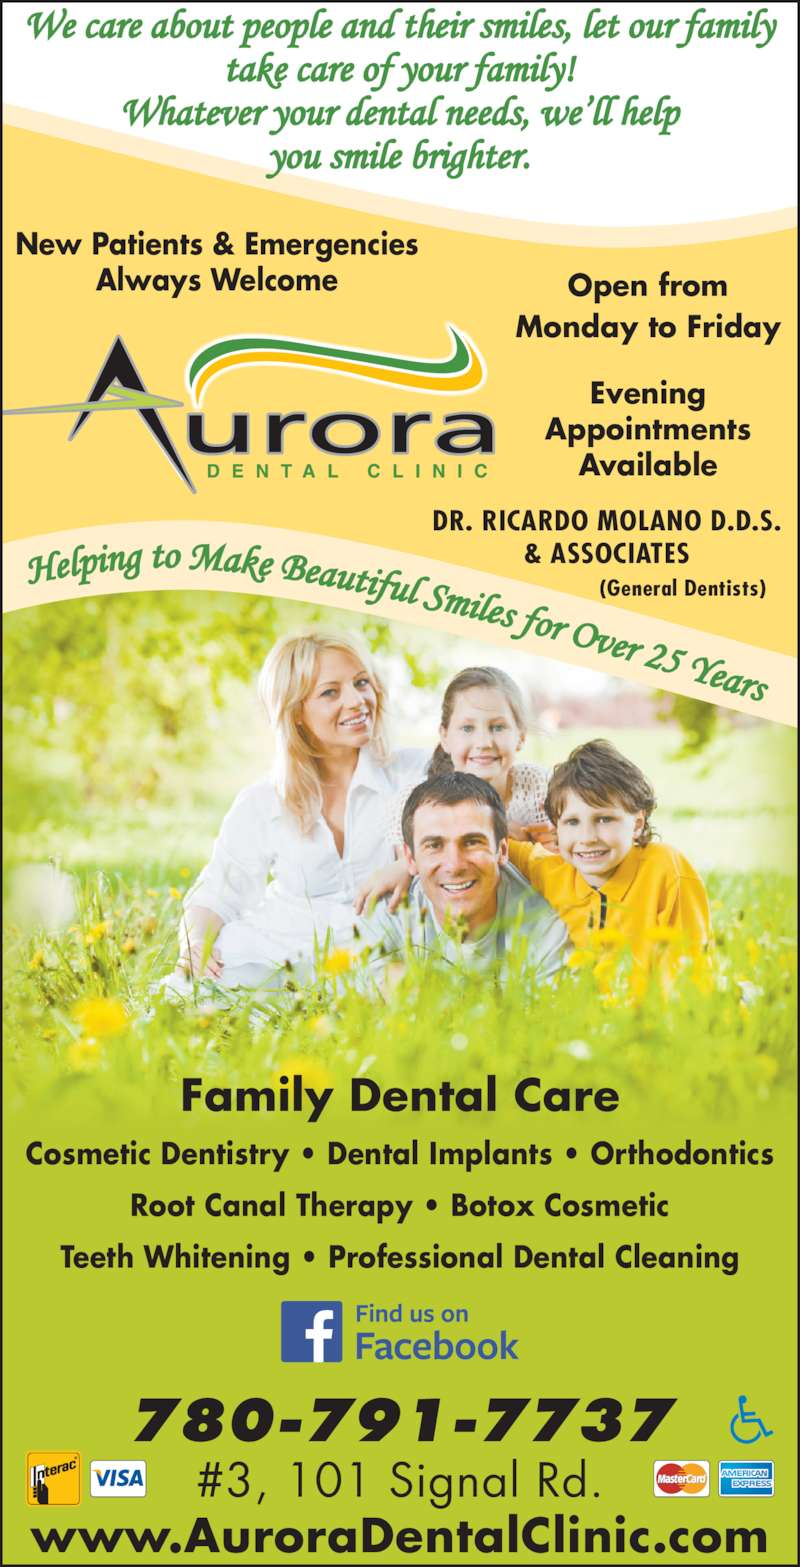 Aurora Dental Clinic (7807917737) - Display Ad - 780-791-7737 #3, 101 Signal Rd. www.AuroraDentalClinic.com Cosmetic Dentistry ? Dental Implants ? Orthodontics Root Canal Therapy ? Botox Cosmetic Teeth Whitening ? Professional Dental Cleaning Family Dental Care DR. RICARDO MOLANO D.D.S. & ASSOCIATES                    (General Dentists) New Patients & Emergencies Always Welcome Open from Monday to Friday Evening Appointments Available